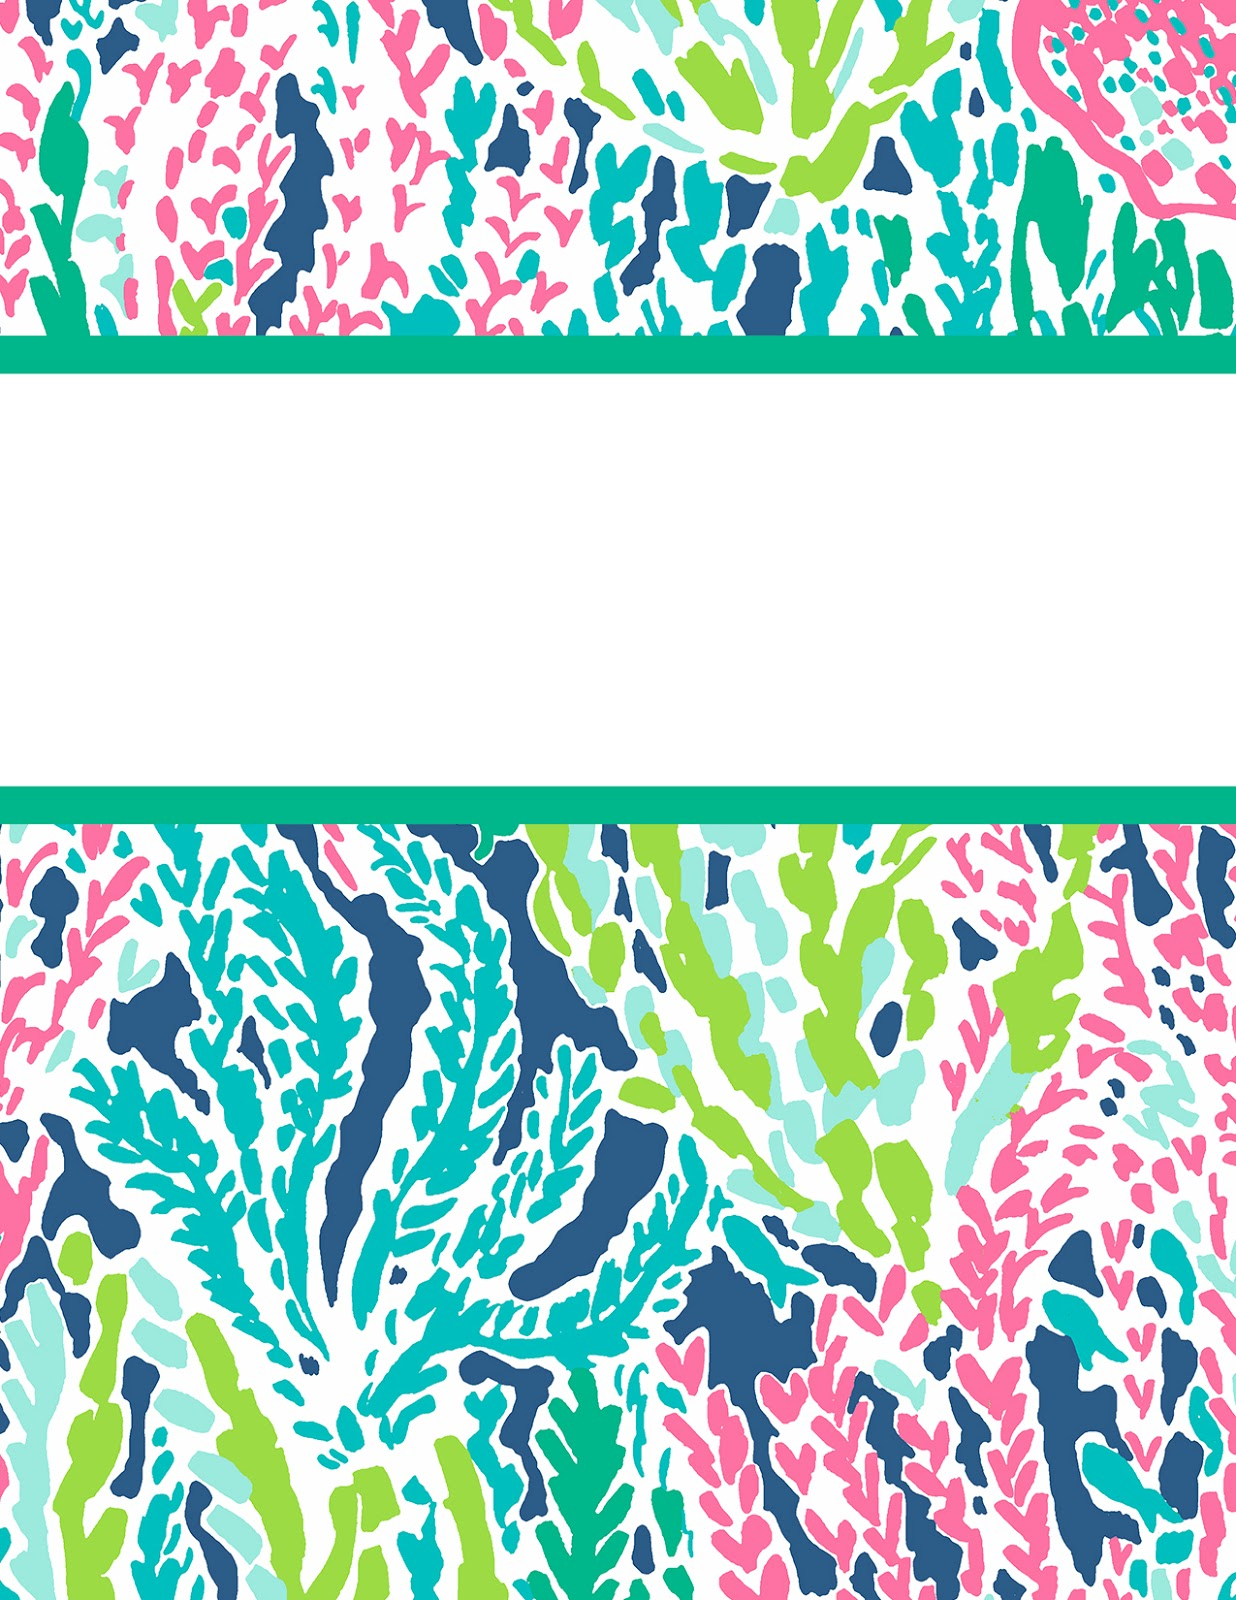 Lilly pulitzer binder covers